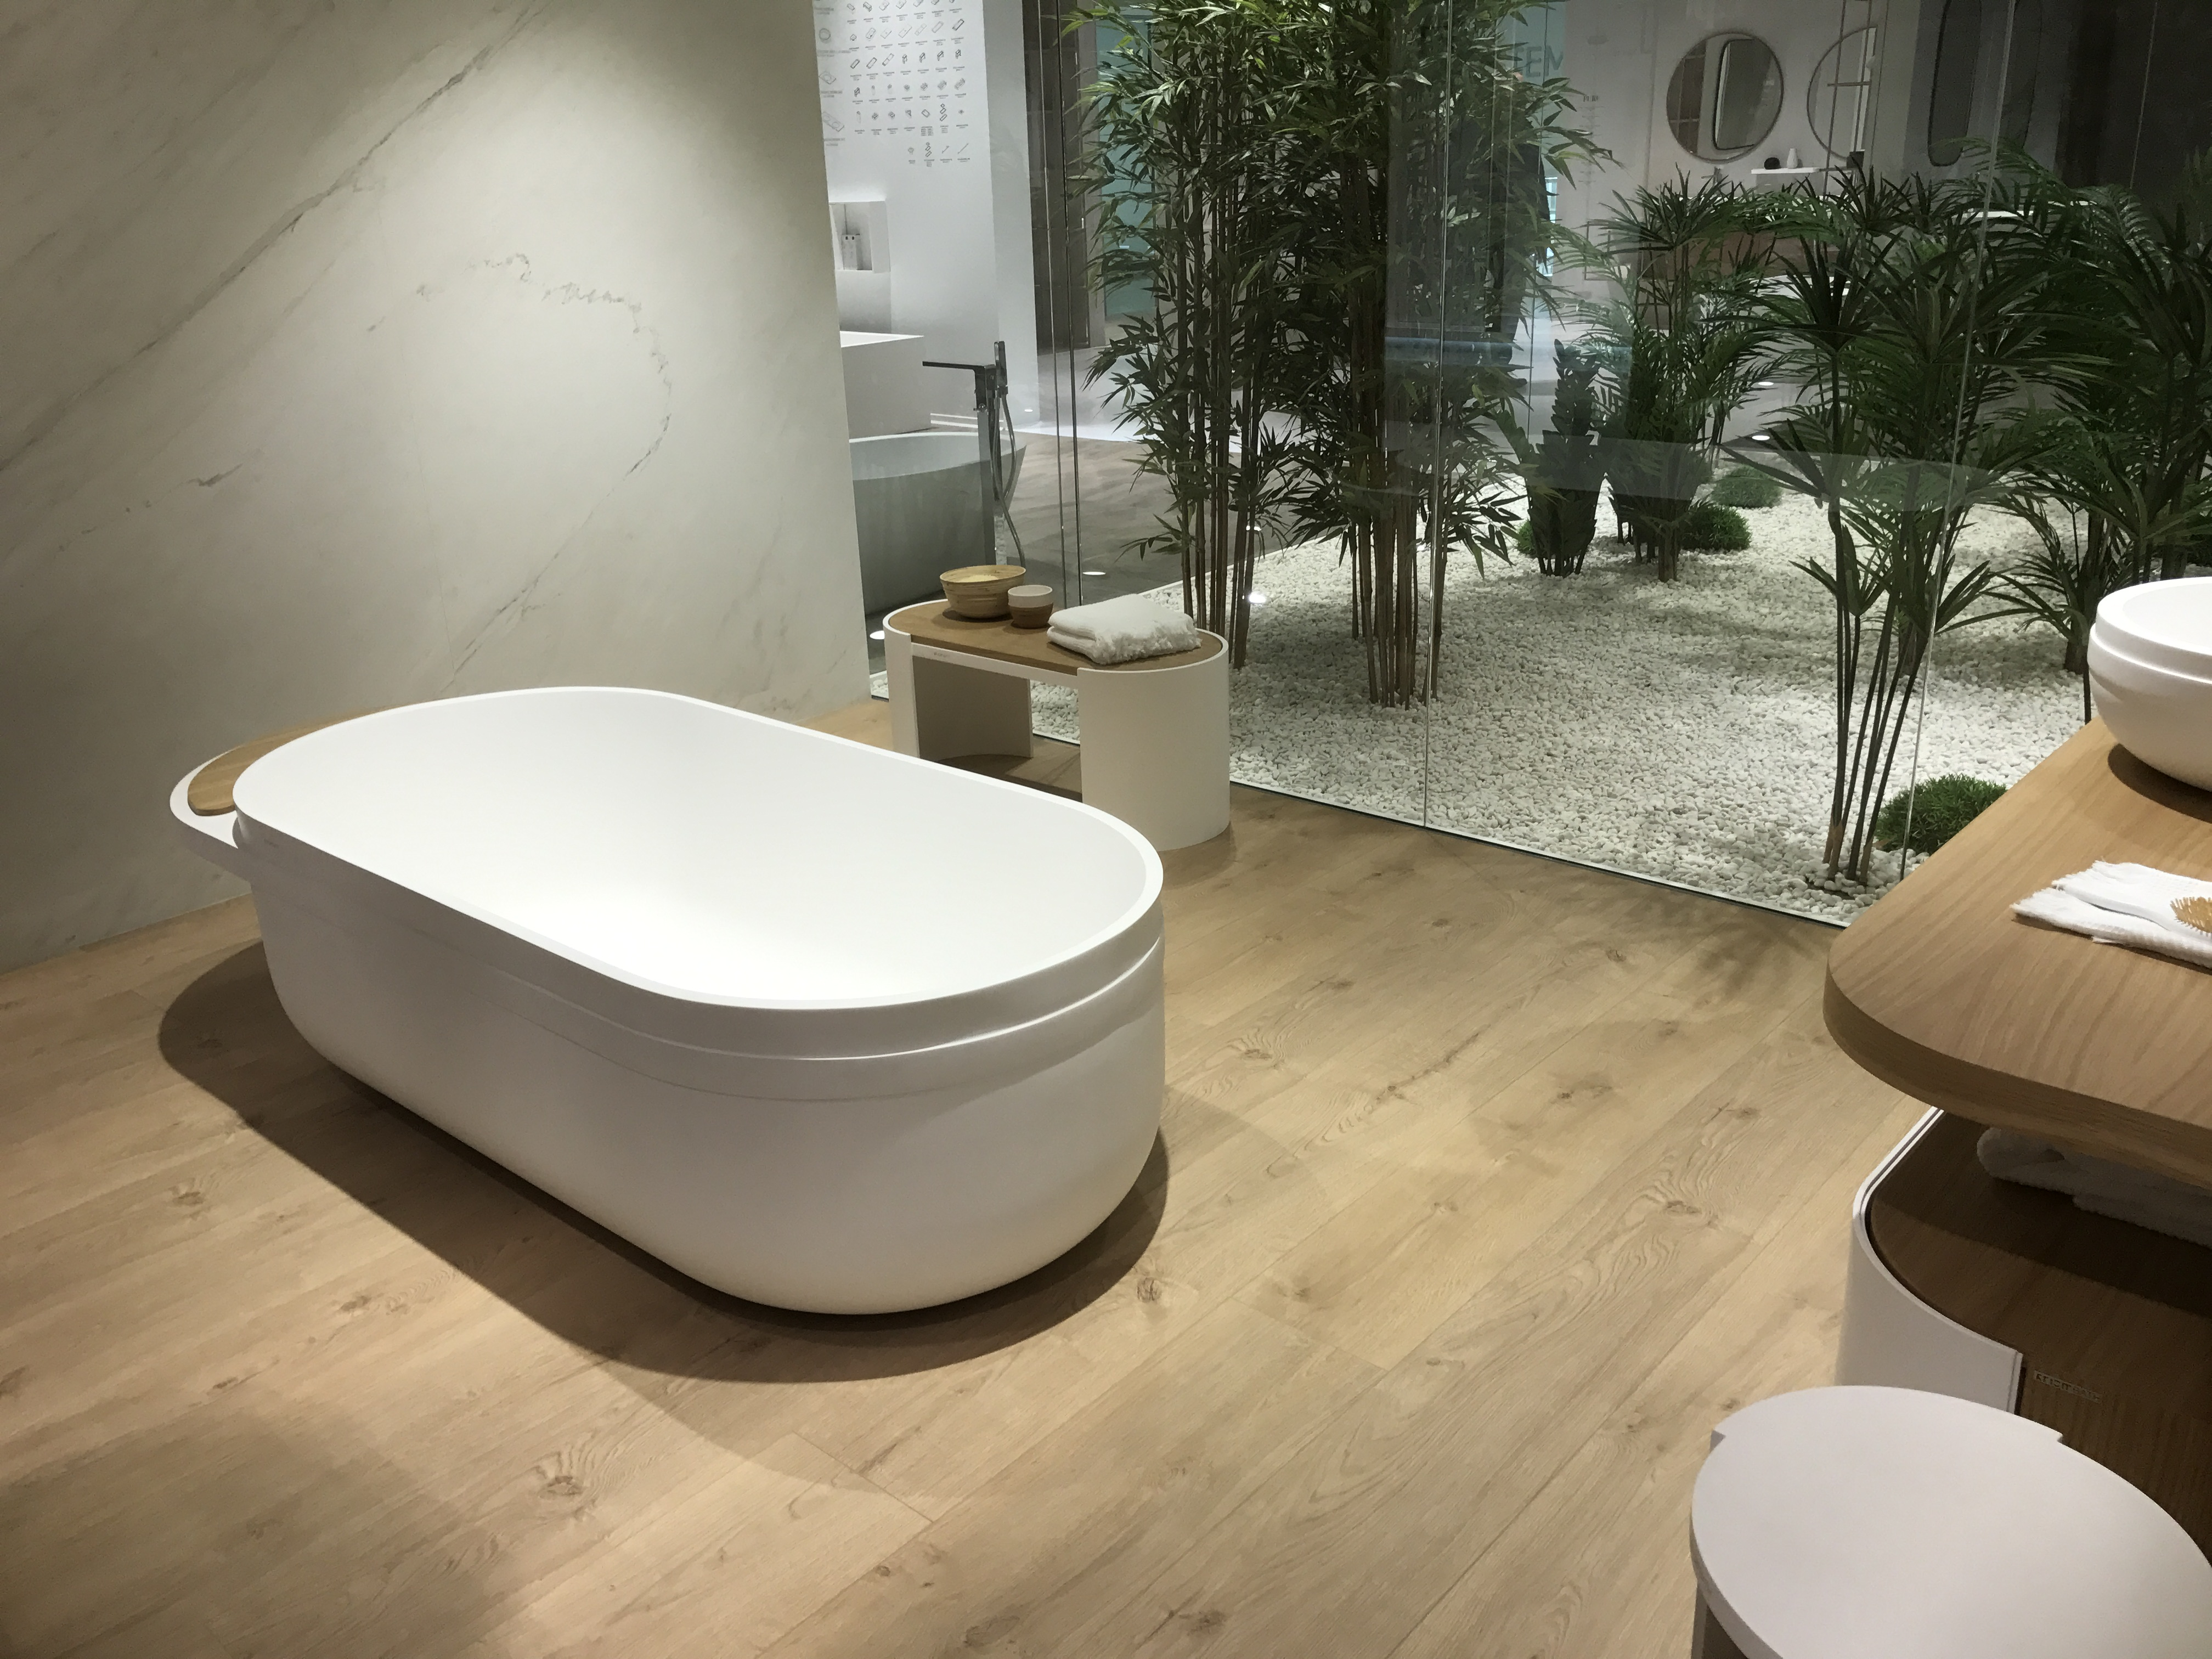 Fluid-shapes-bathroom-collection-contempoary-lines